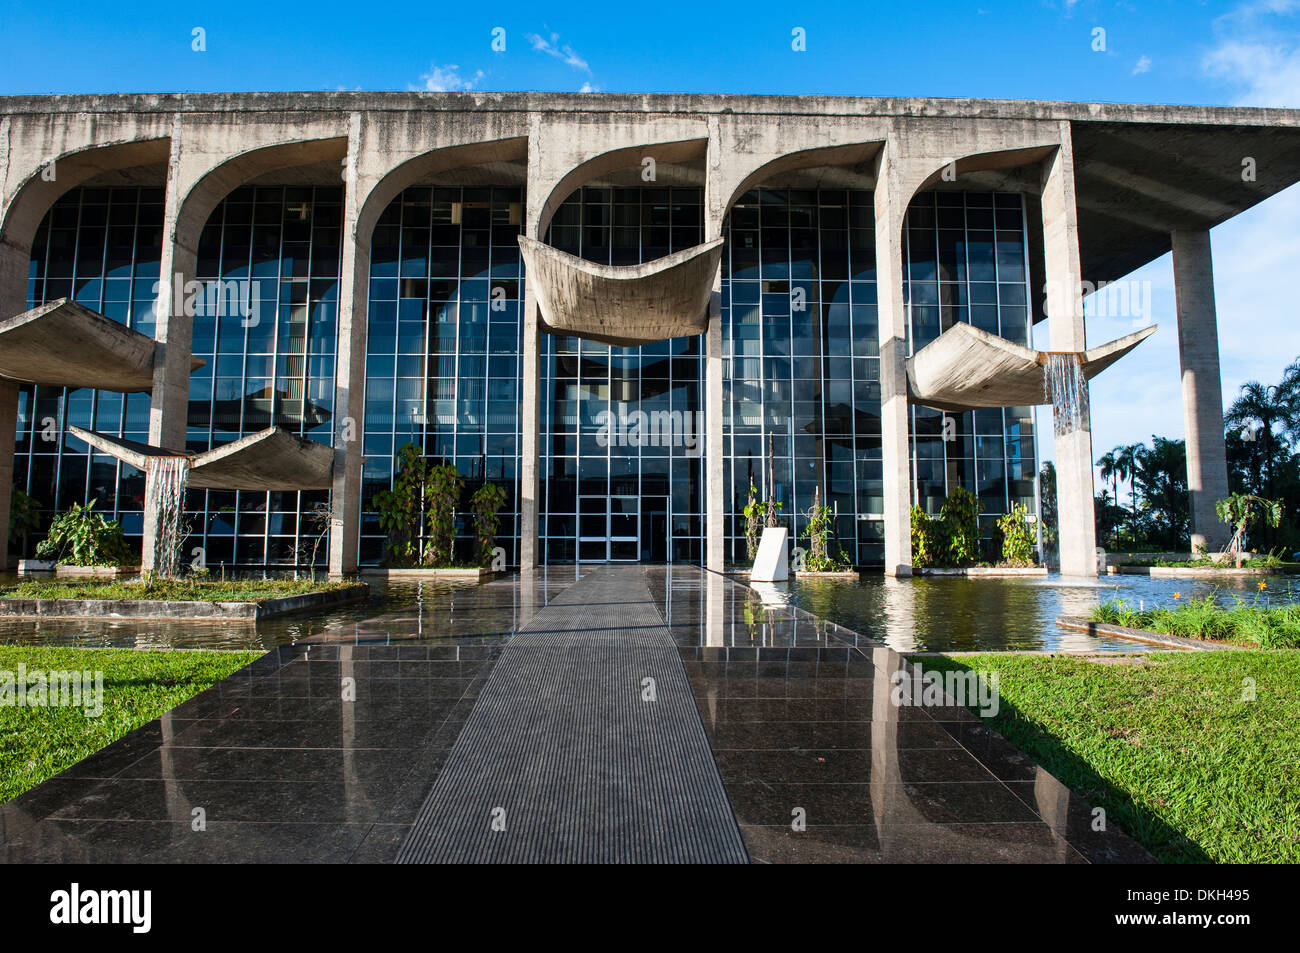 Ministry of Justice, Brasilia, UNESCO World Heritage Site, Brazil, South America - Stock Image